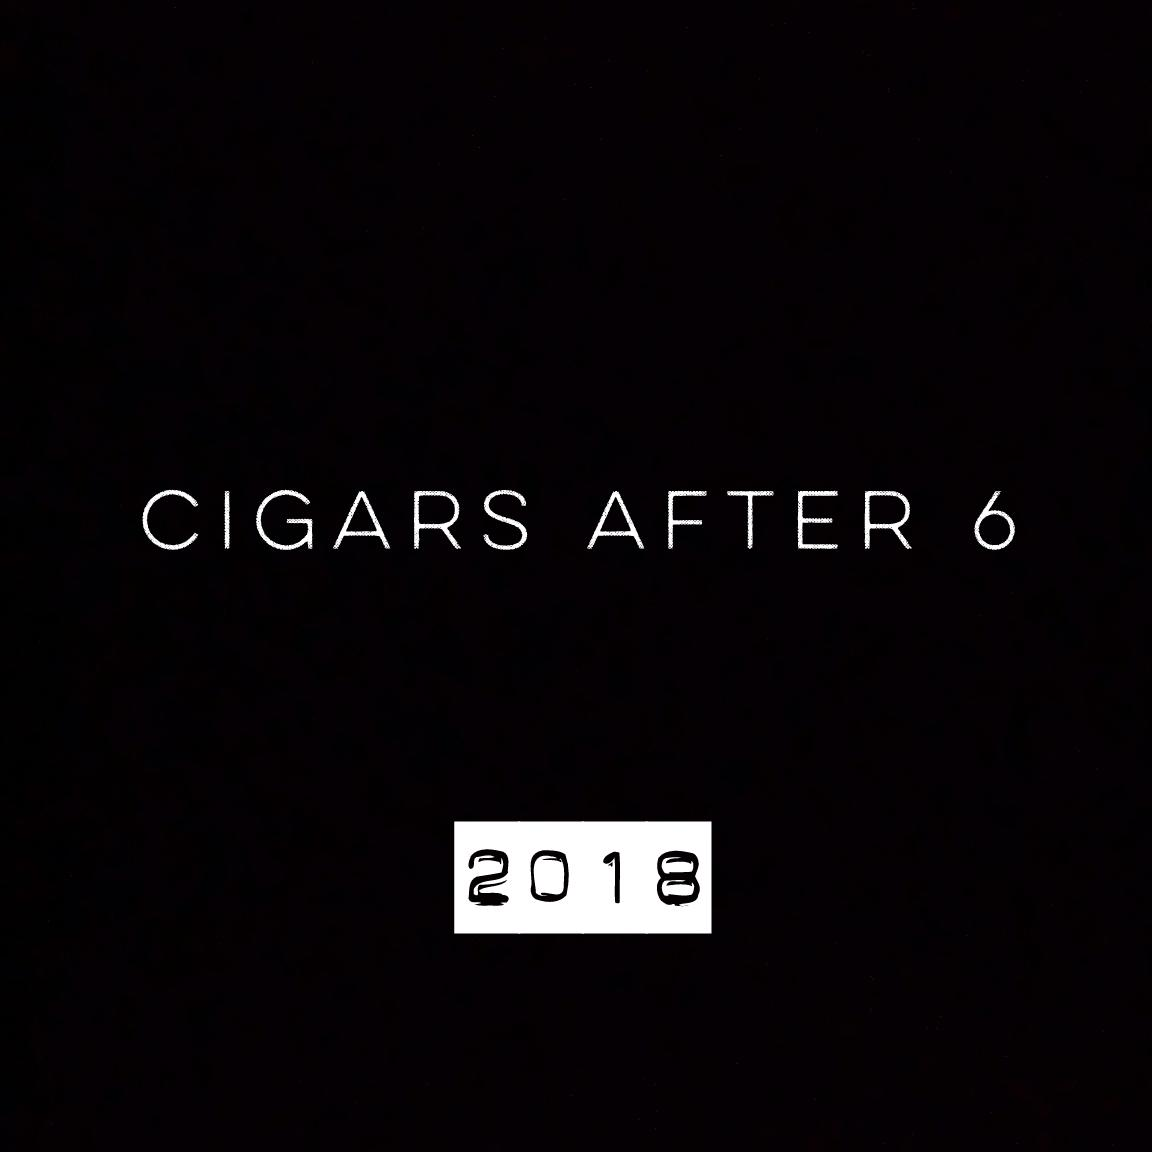 CIGARS AFTER 6